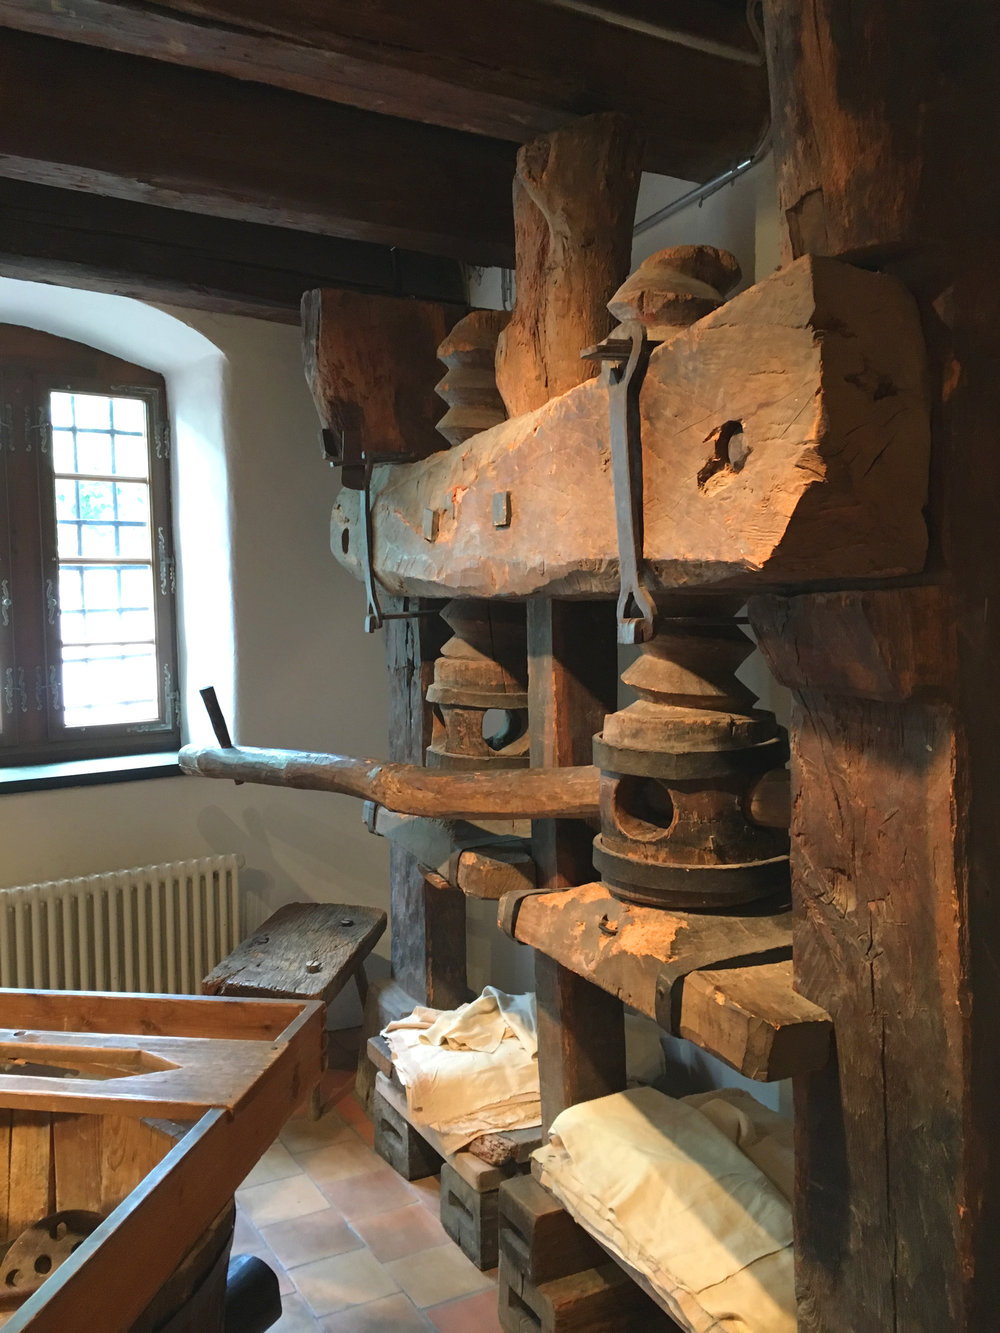 A very early version of paper press at the Museum